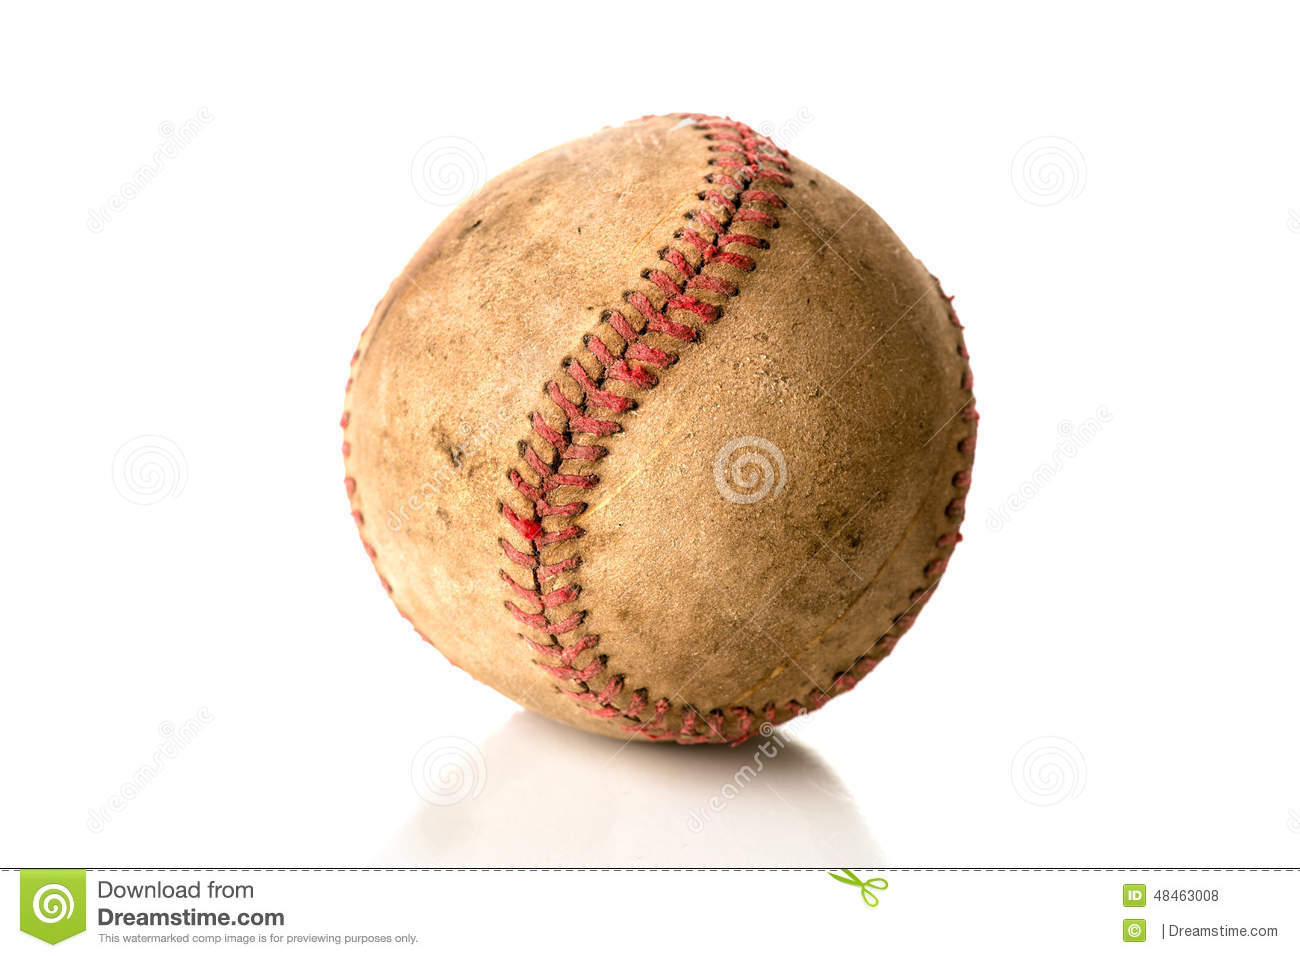 A beat-up, old baseball on white